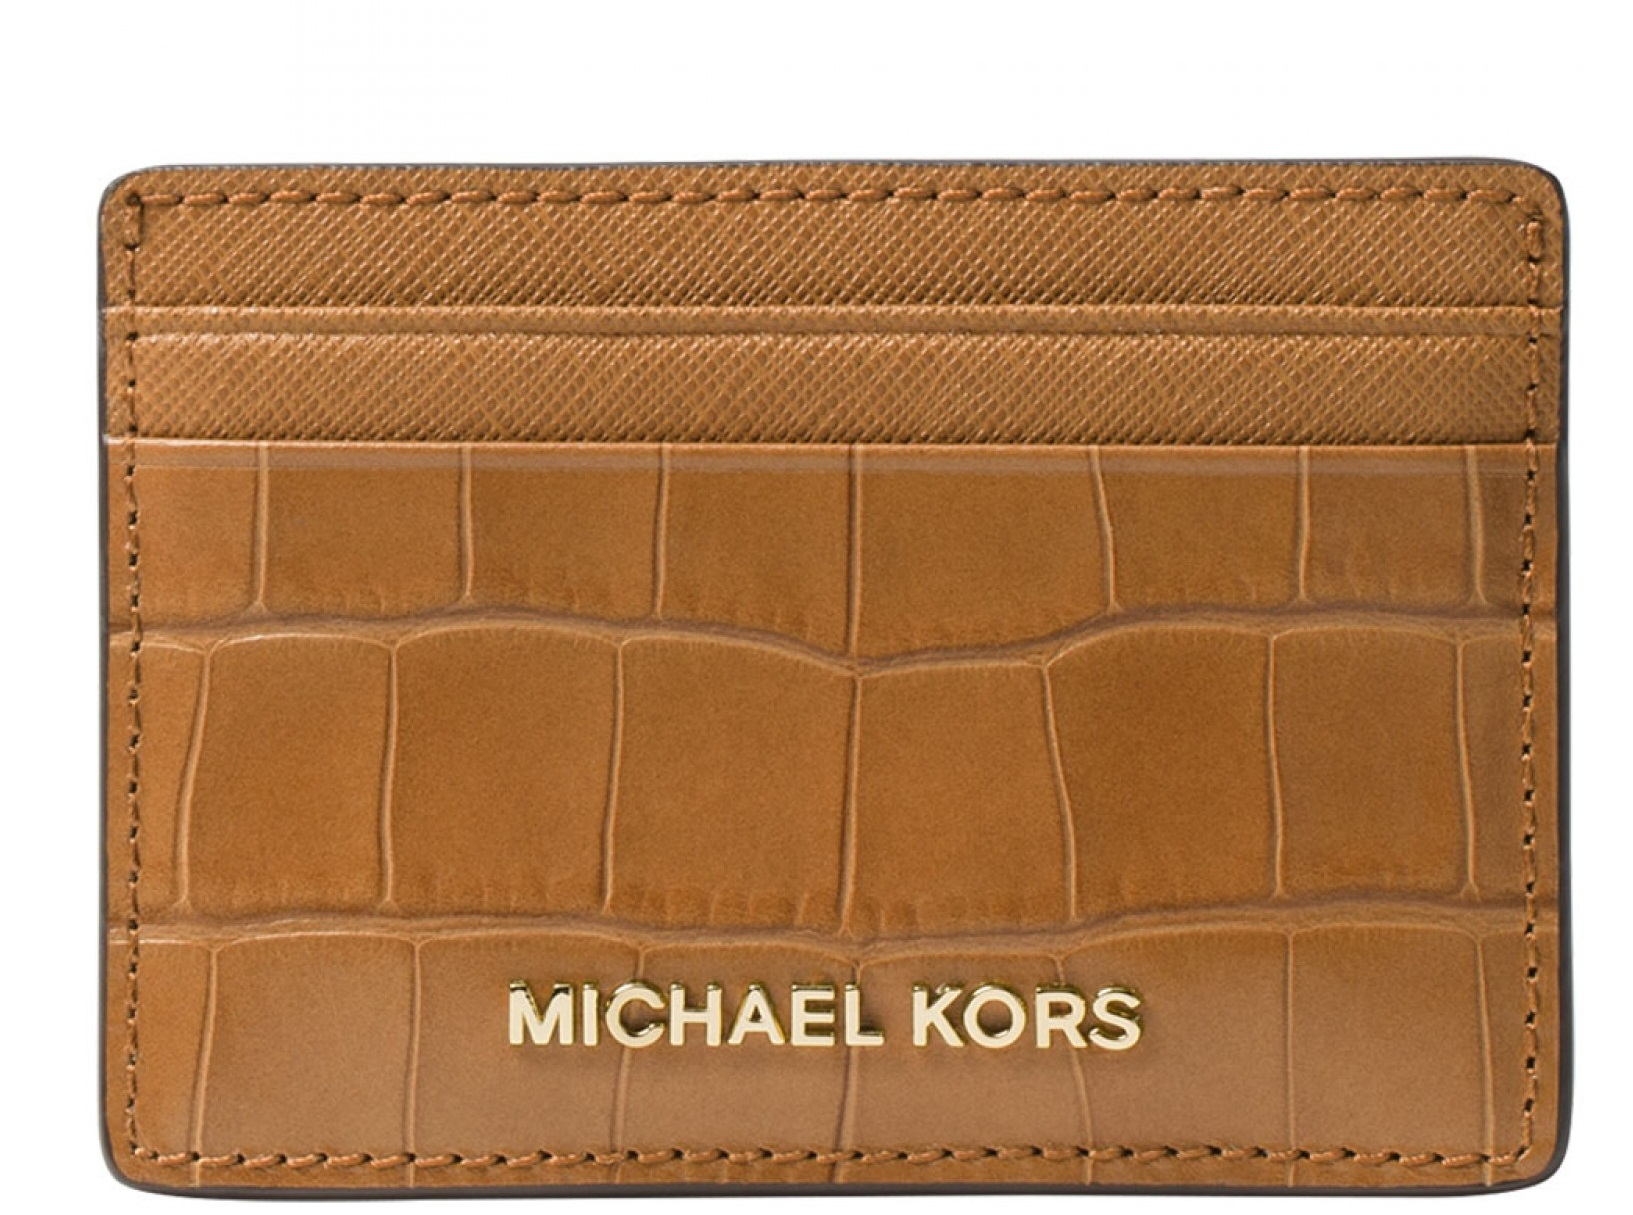 Michael Kors Money Pieces Crocodile-effect Leather - Card Holder - Acorn - 32F7GF6D0E-532